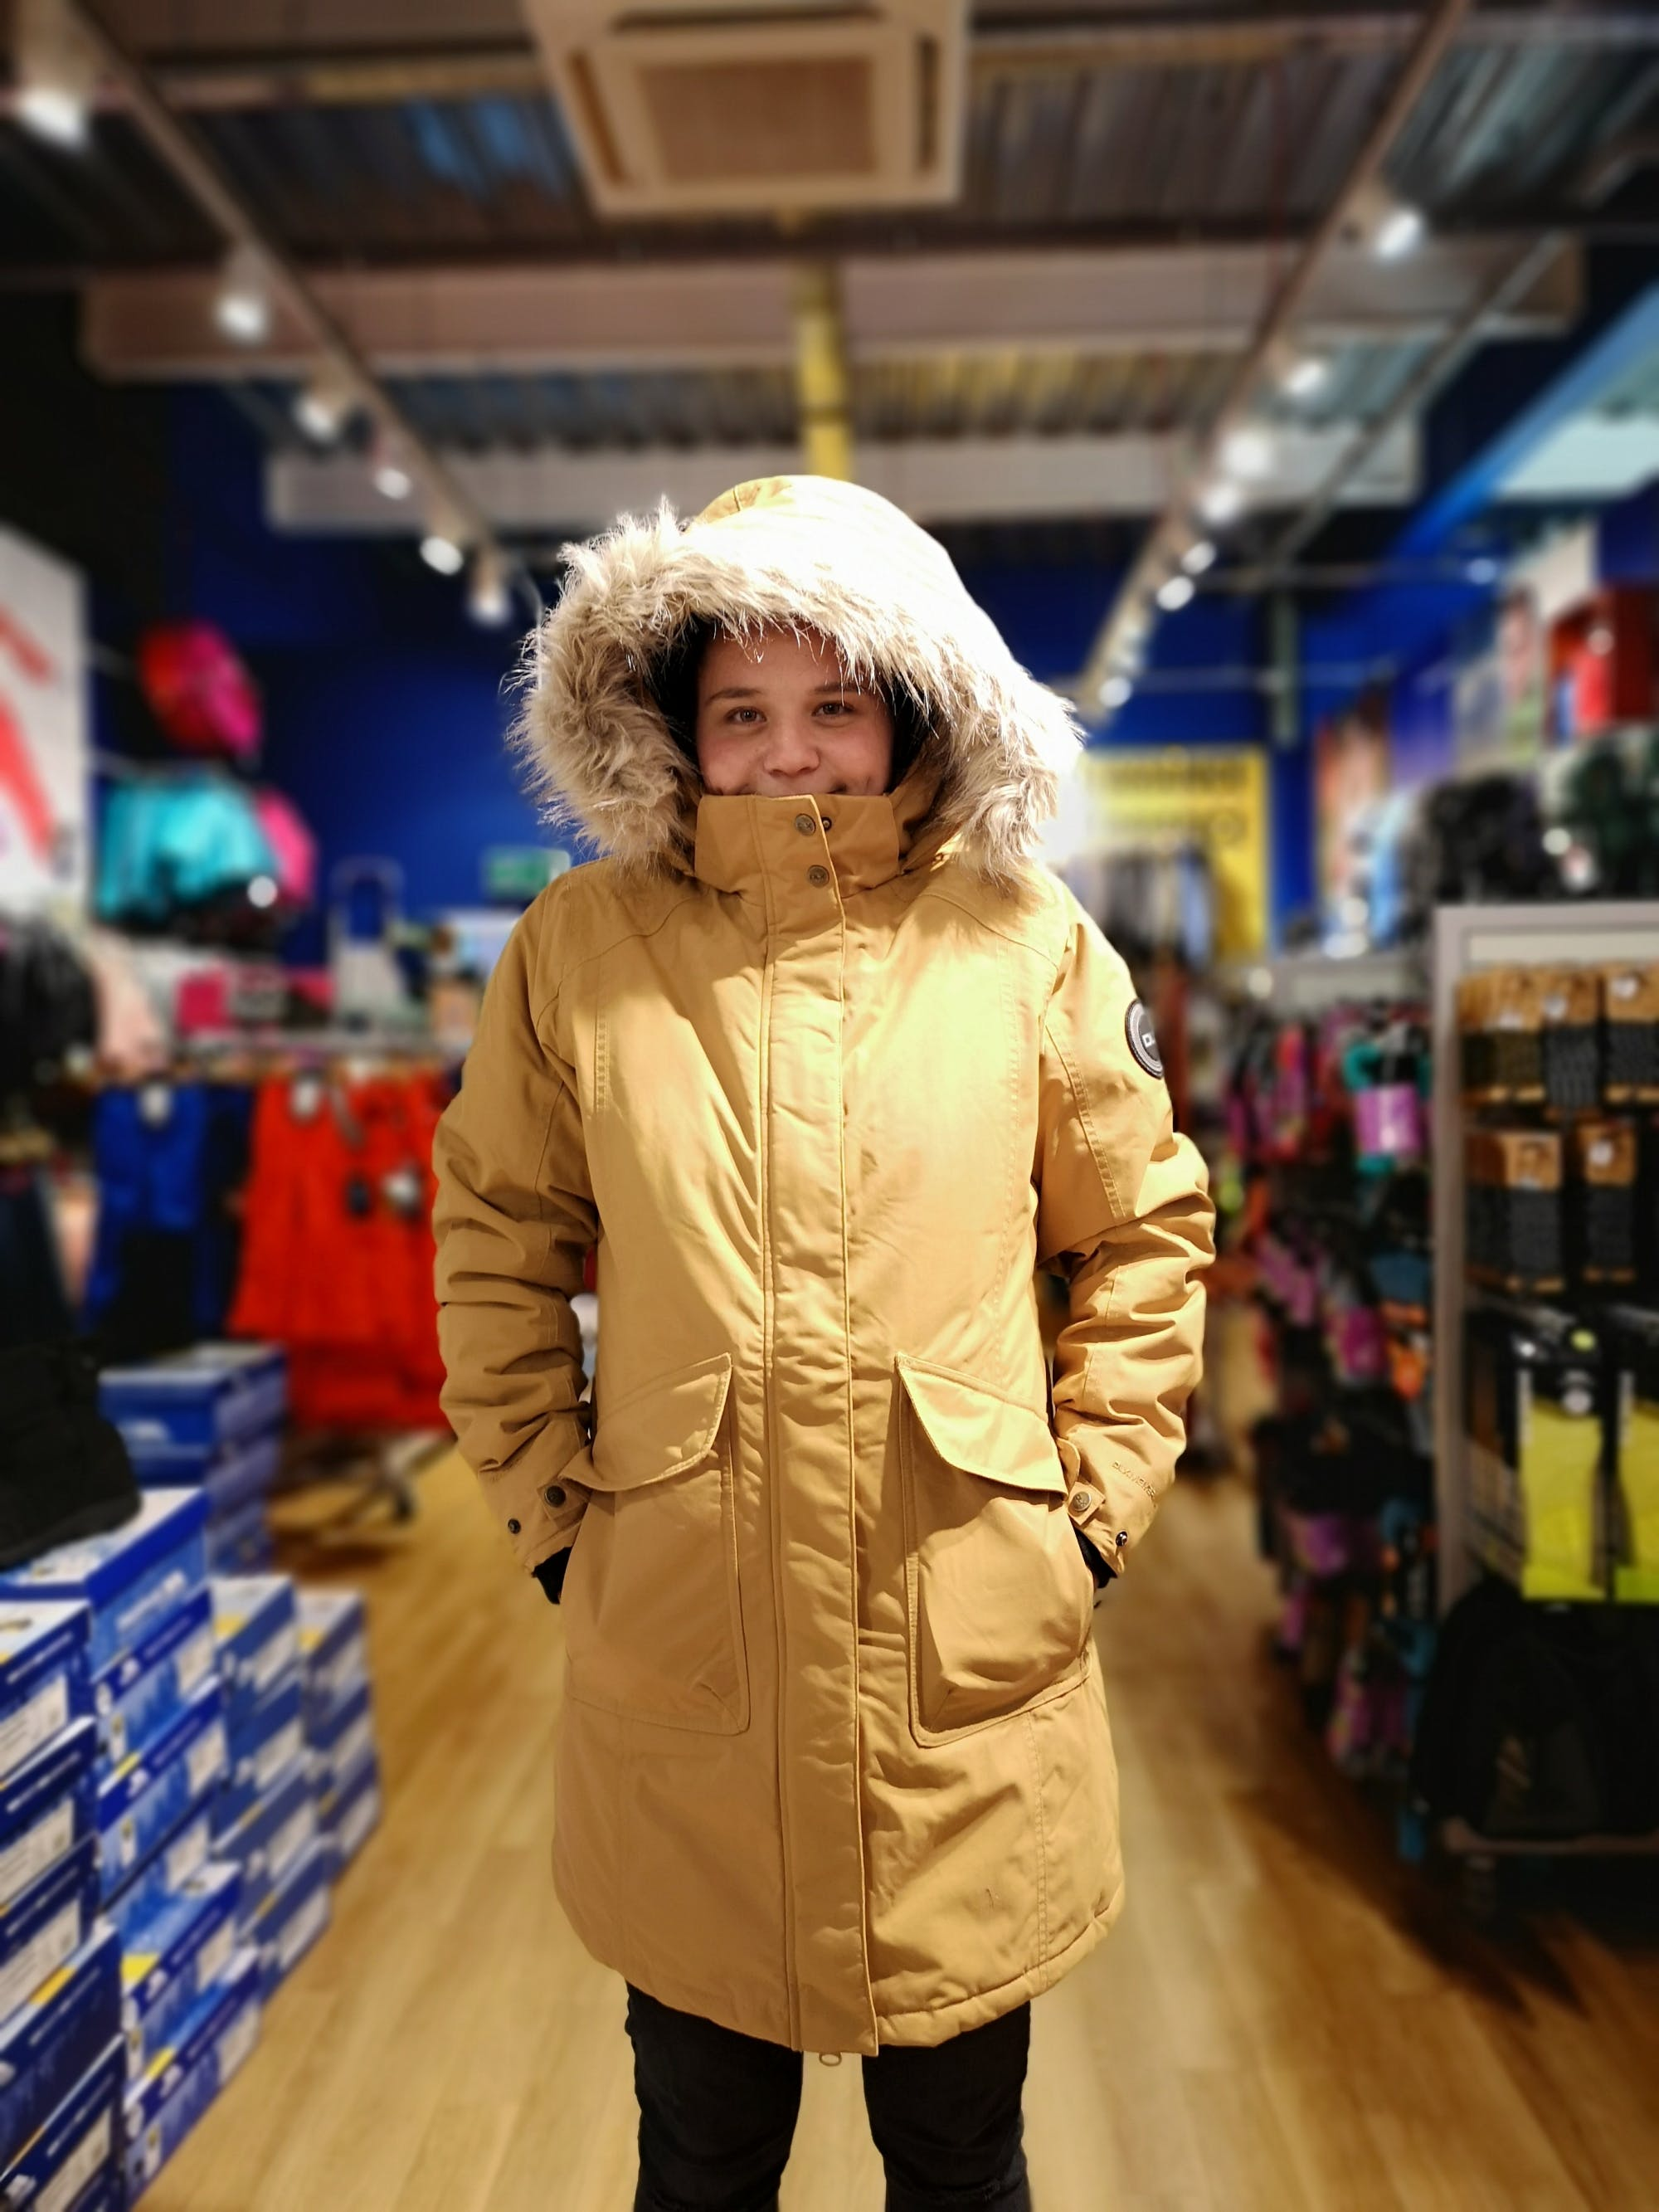 Ladies stay warm and dry with DLX waterproof down filled parka TRESPASS £139.99